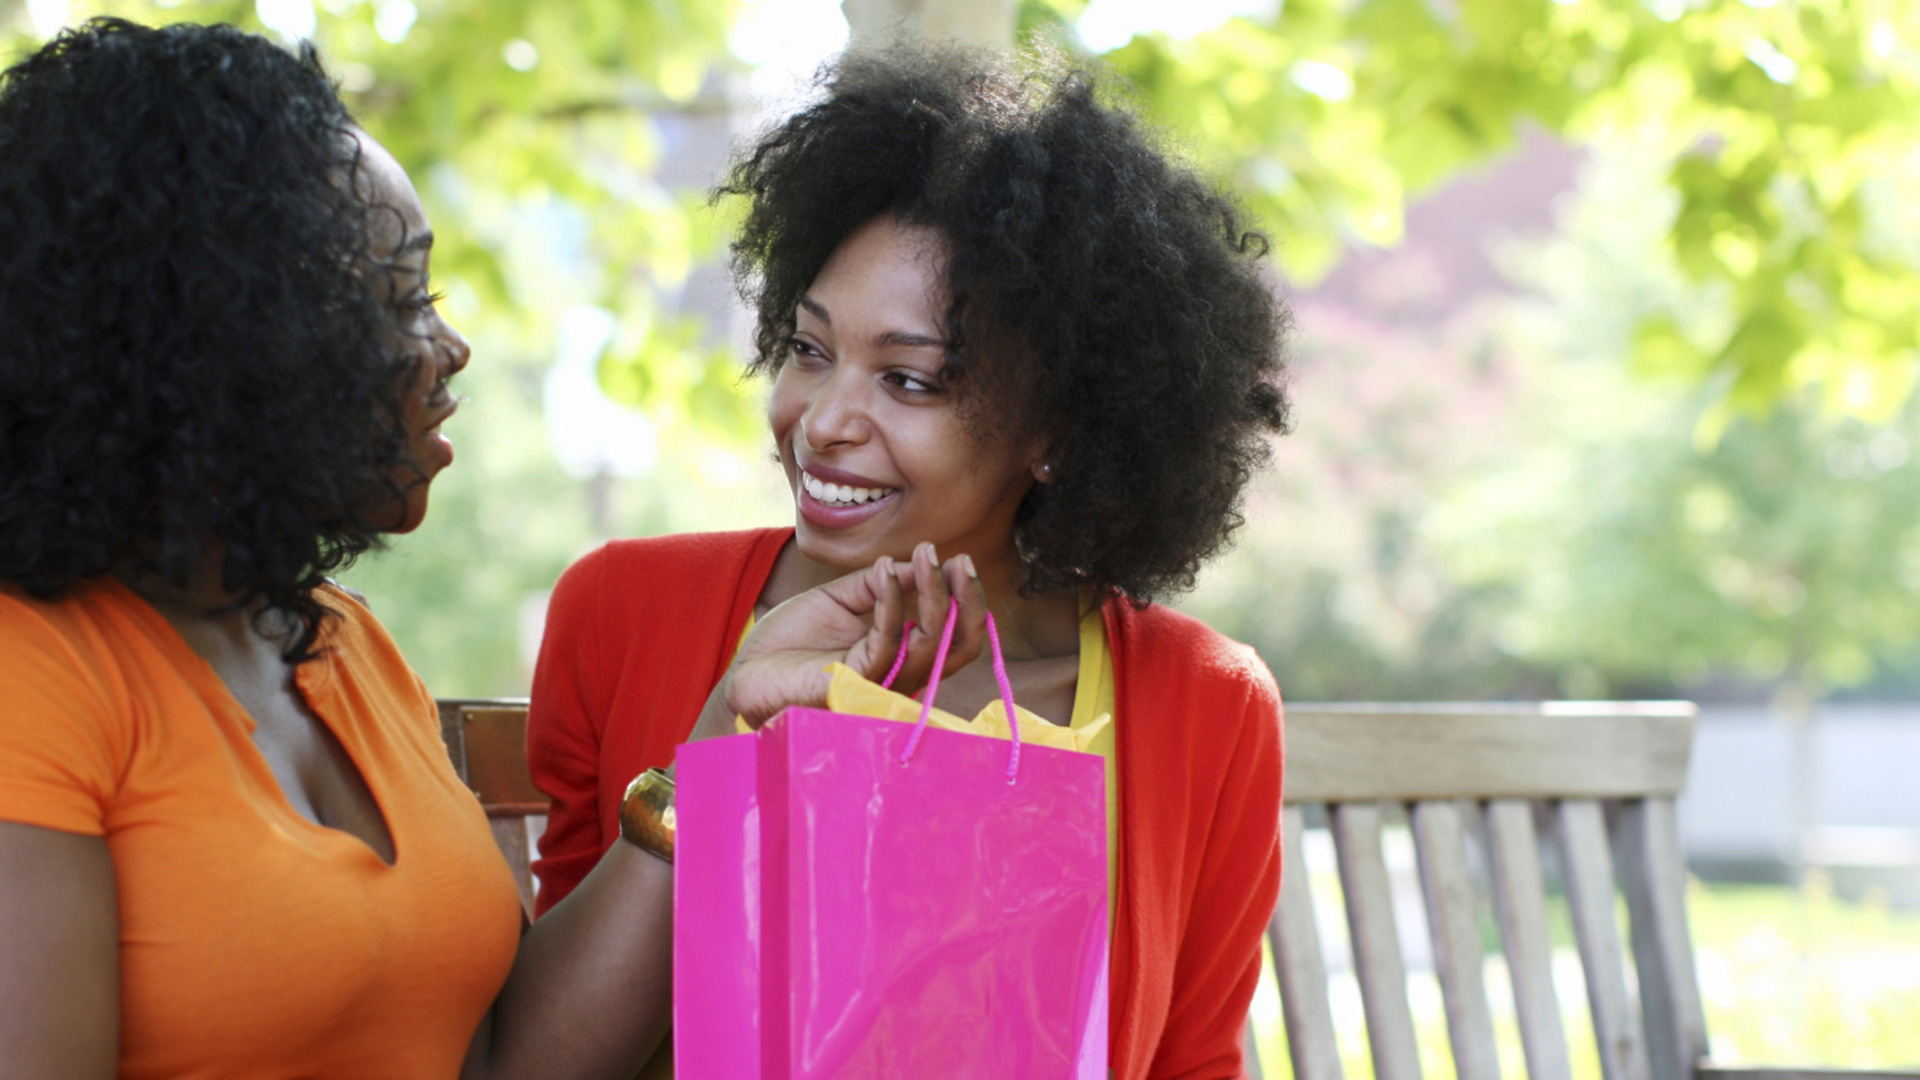 Woman giving friend gift